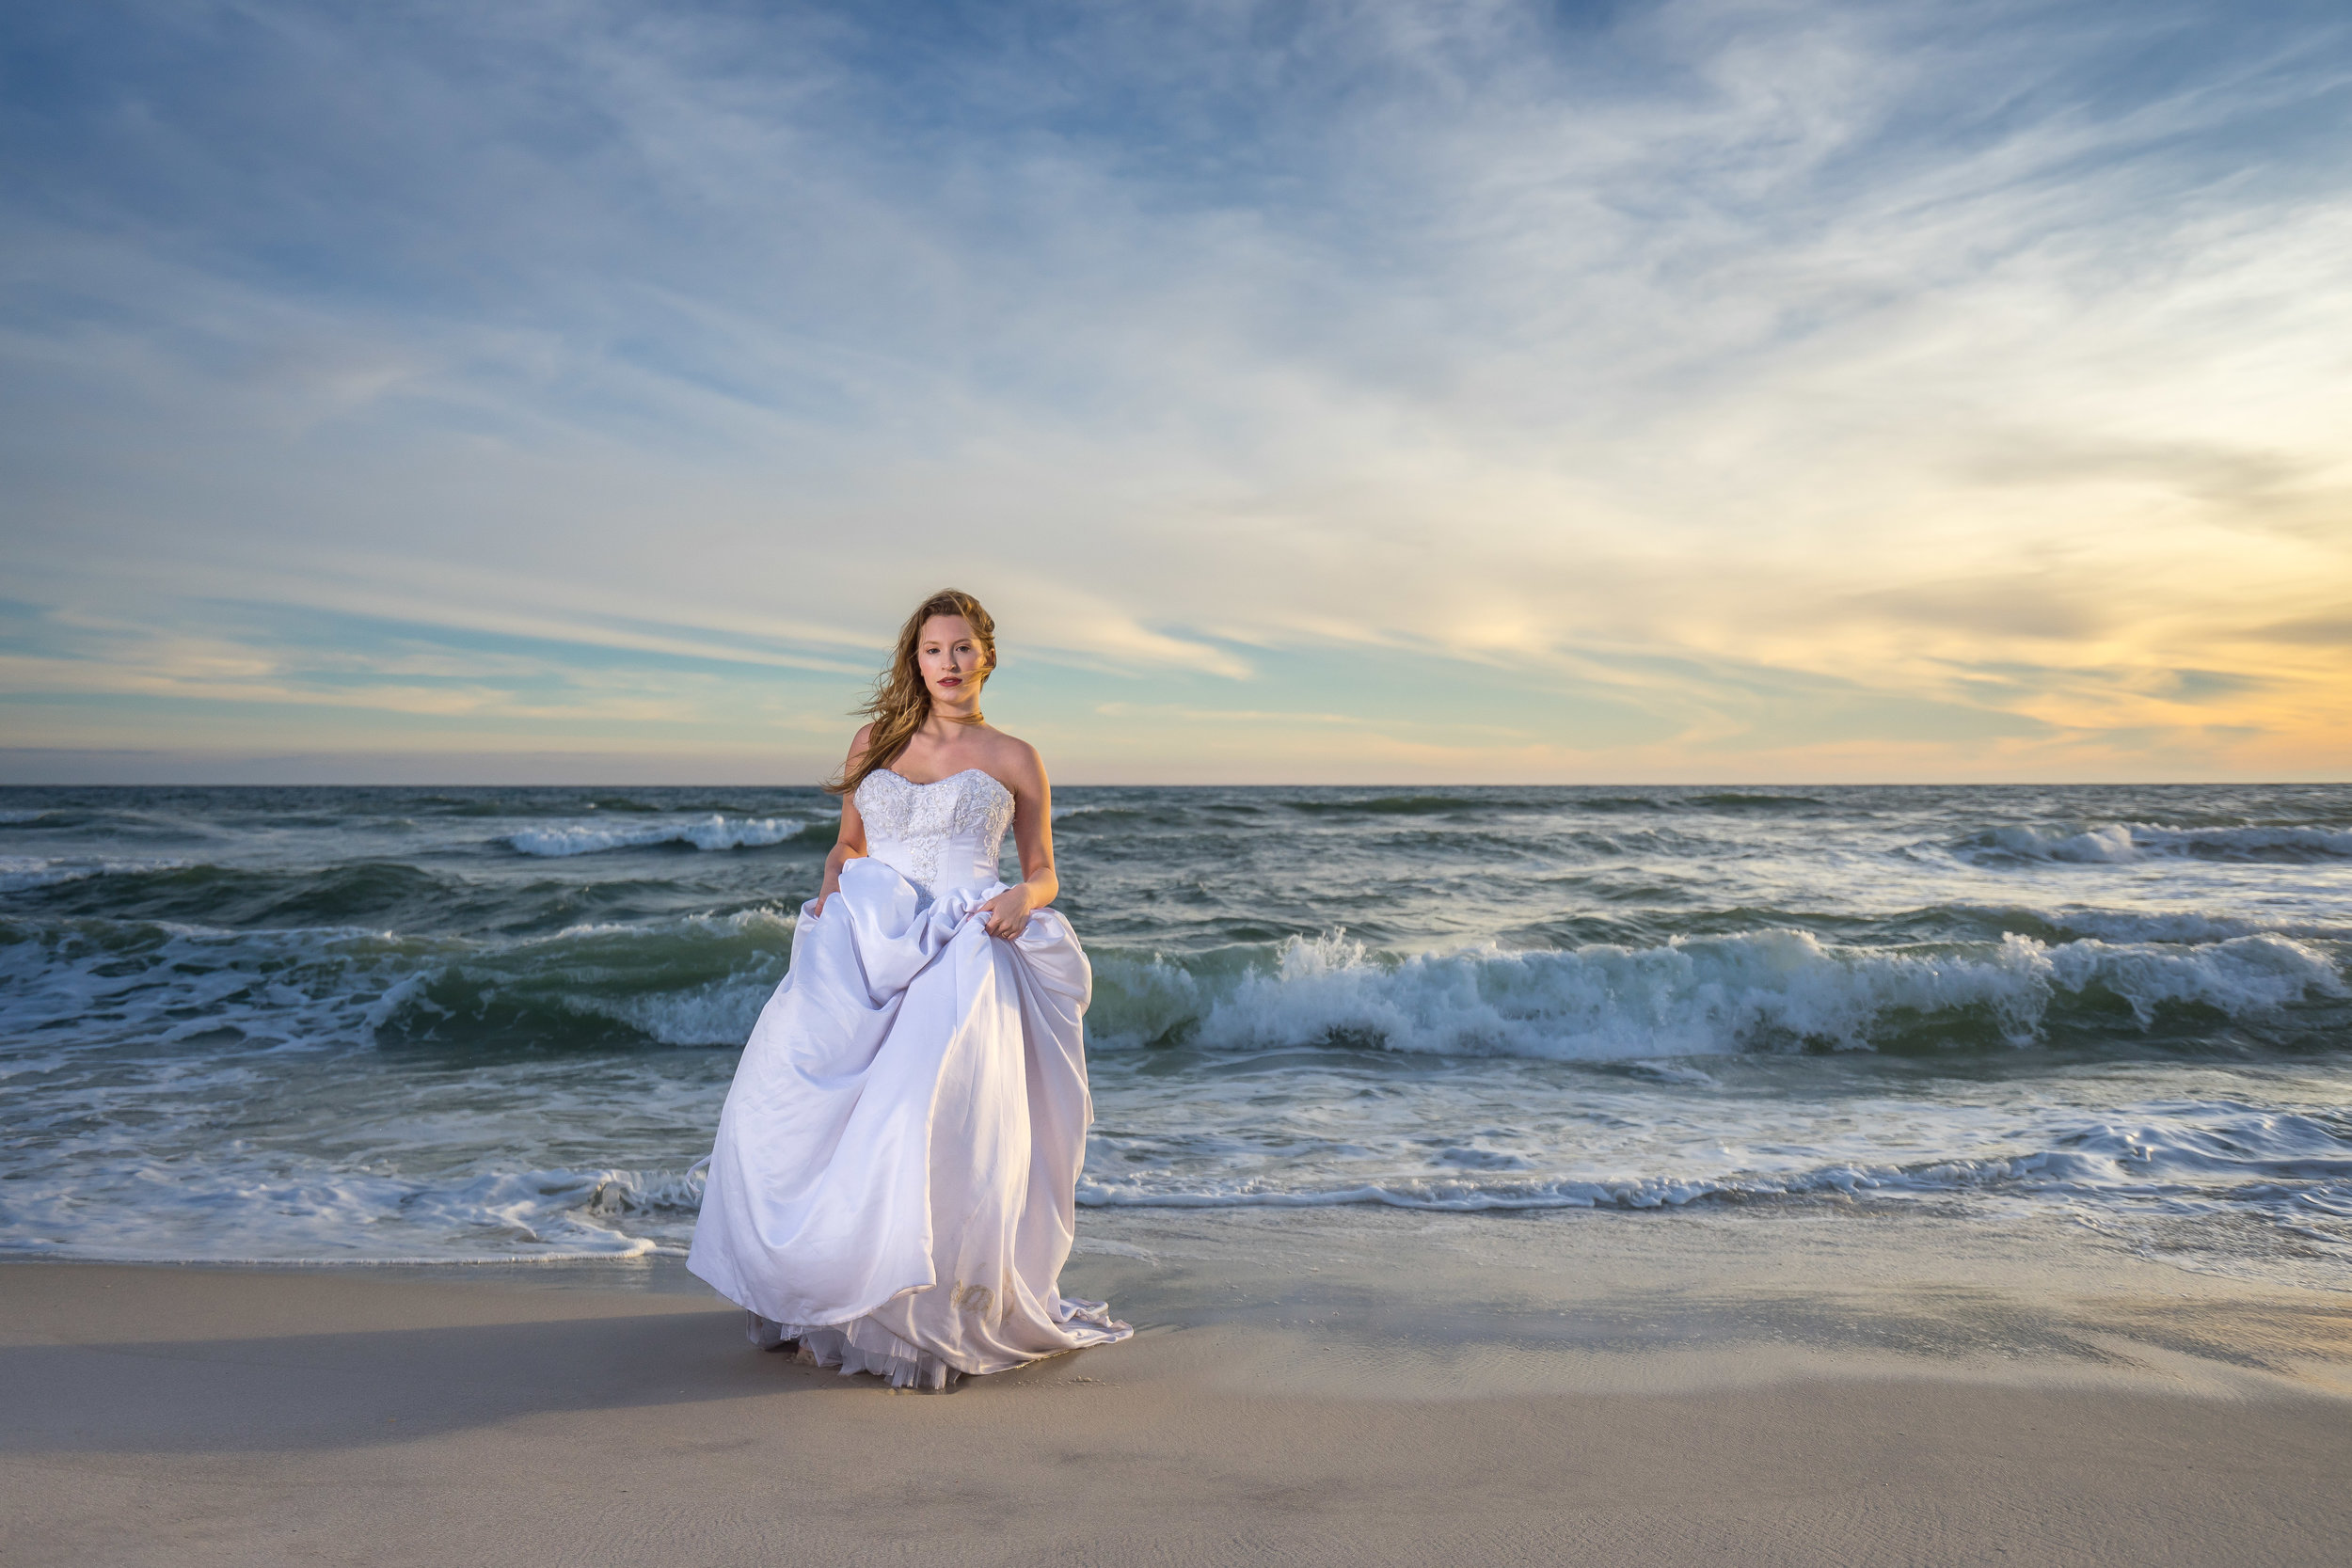 beautiful image of bride carrying soaked wedding dress on pensacola beach